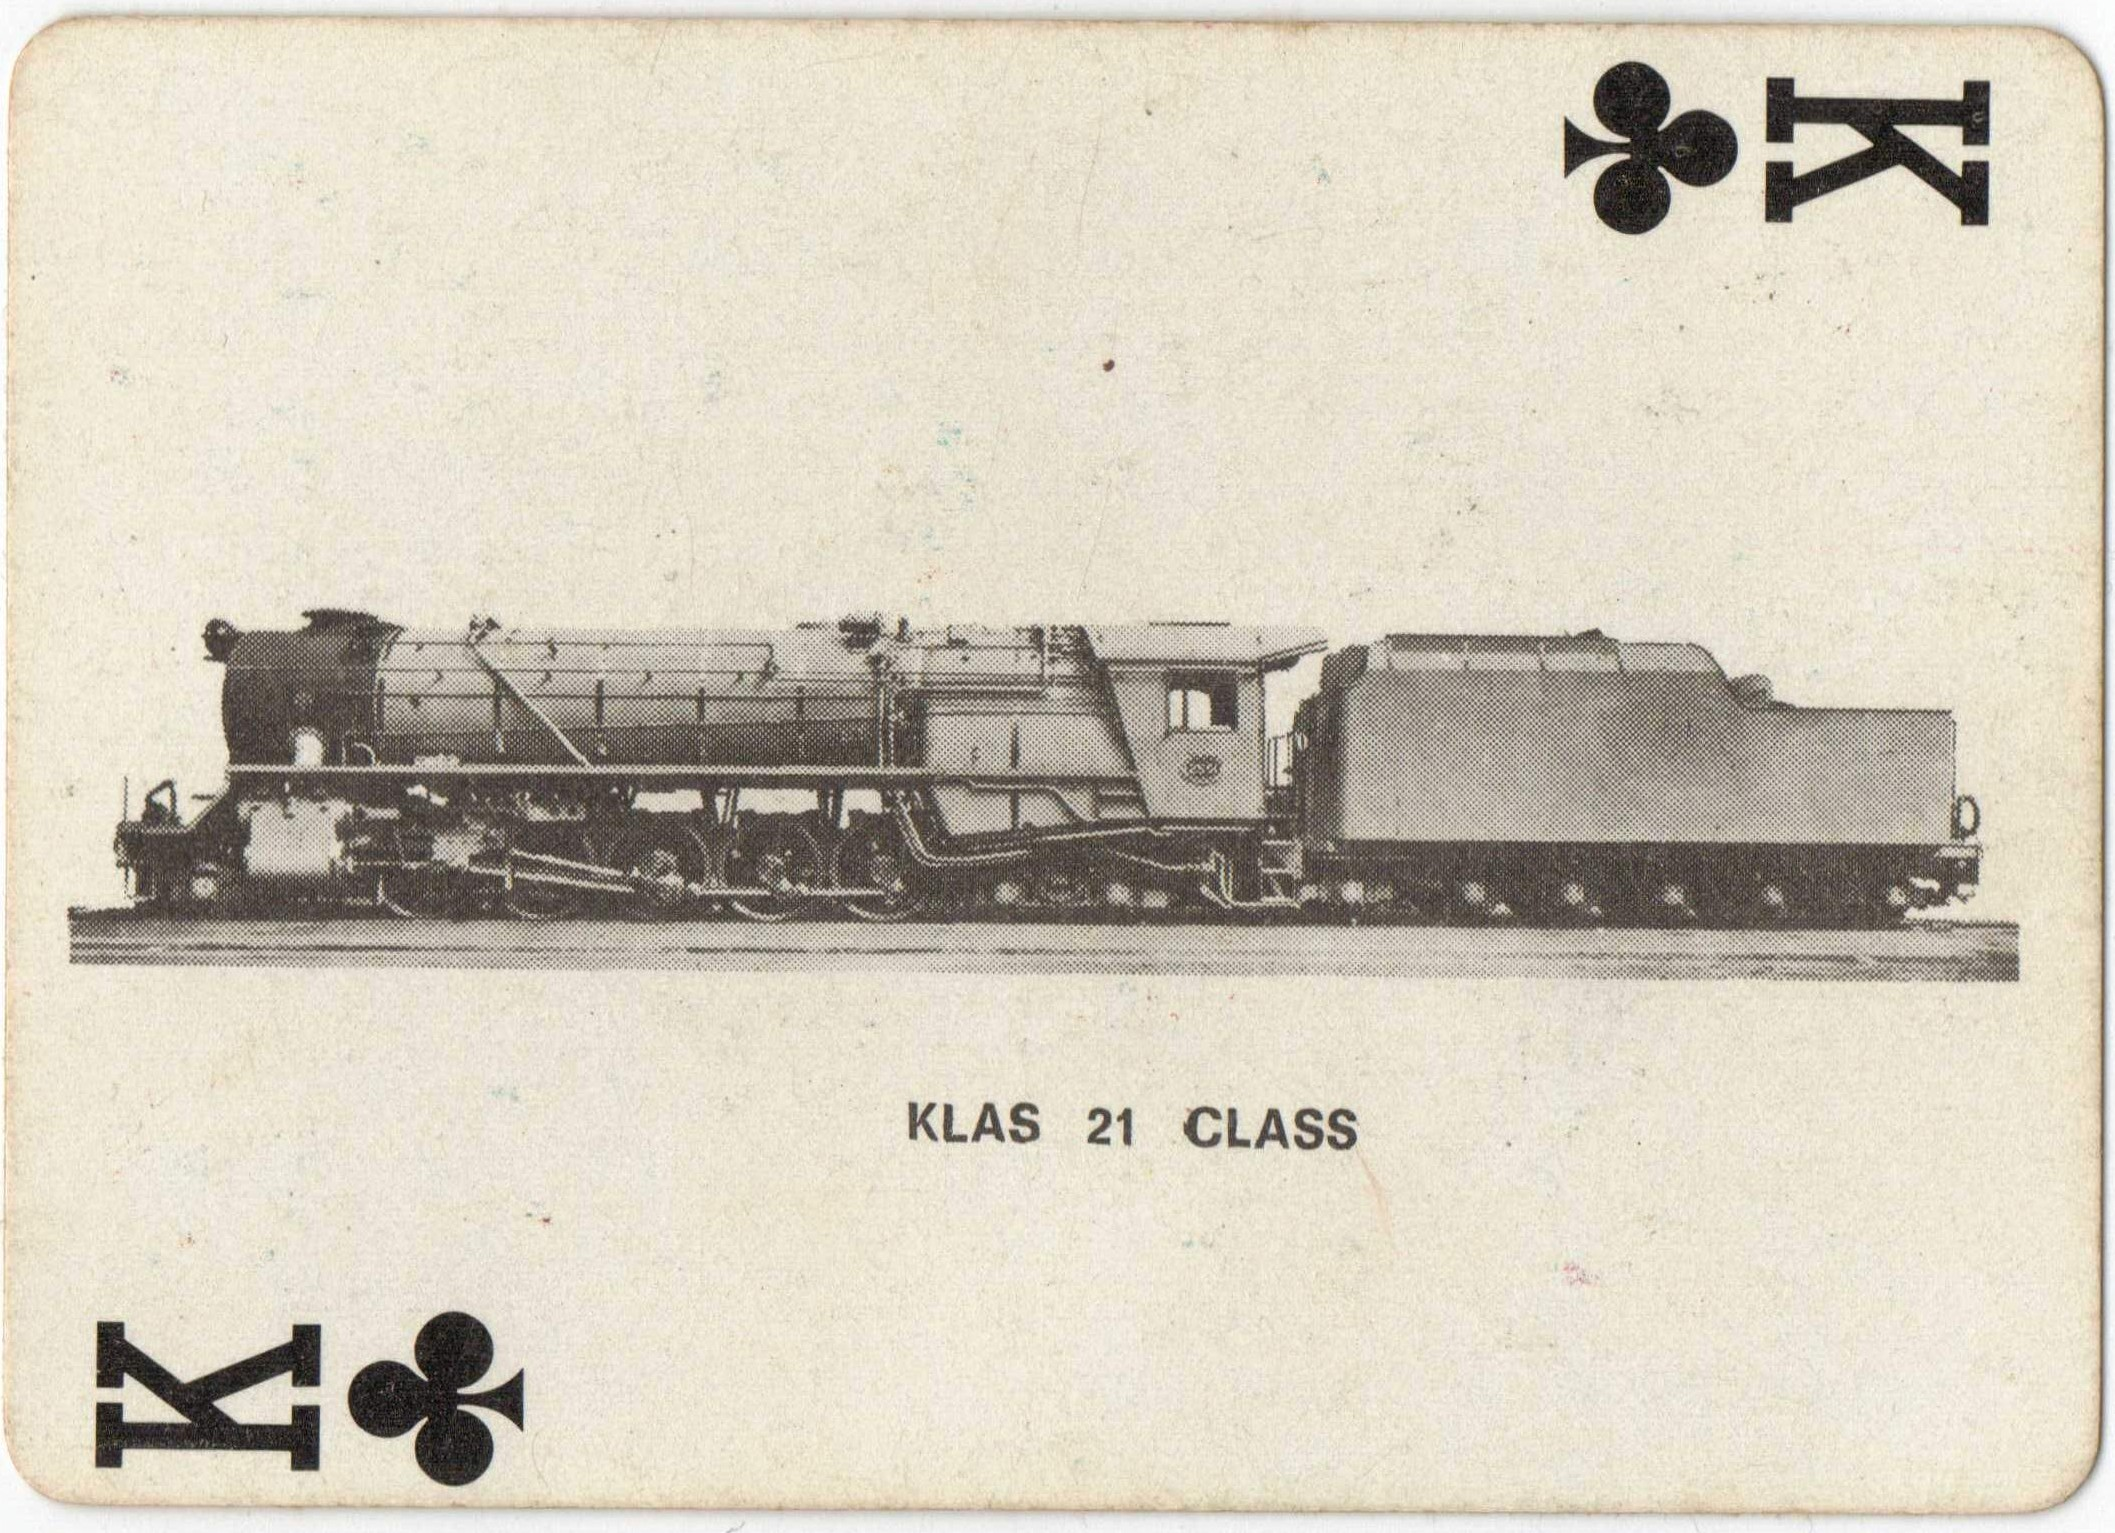 File:Class 21 2551 (2-10-4) Playing Cards.jpg